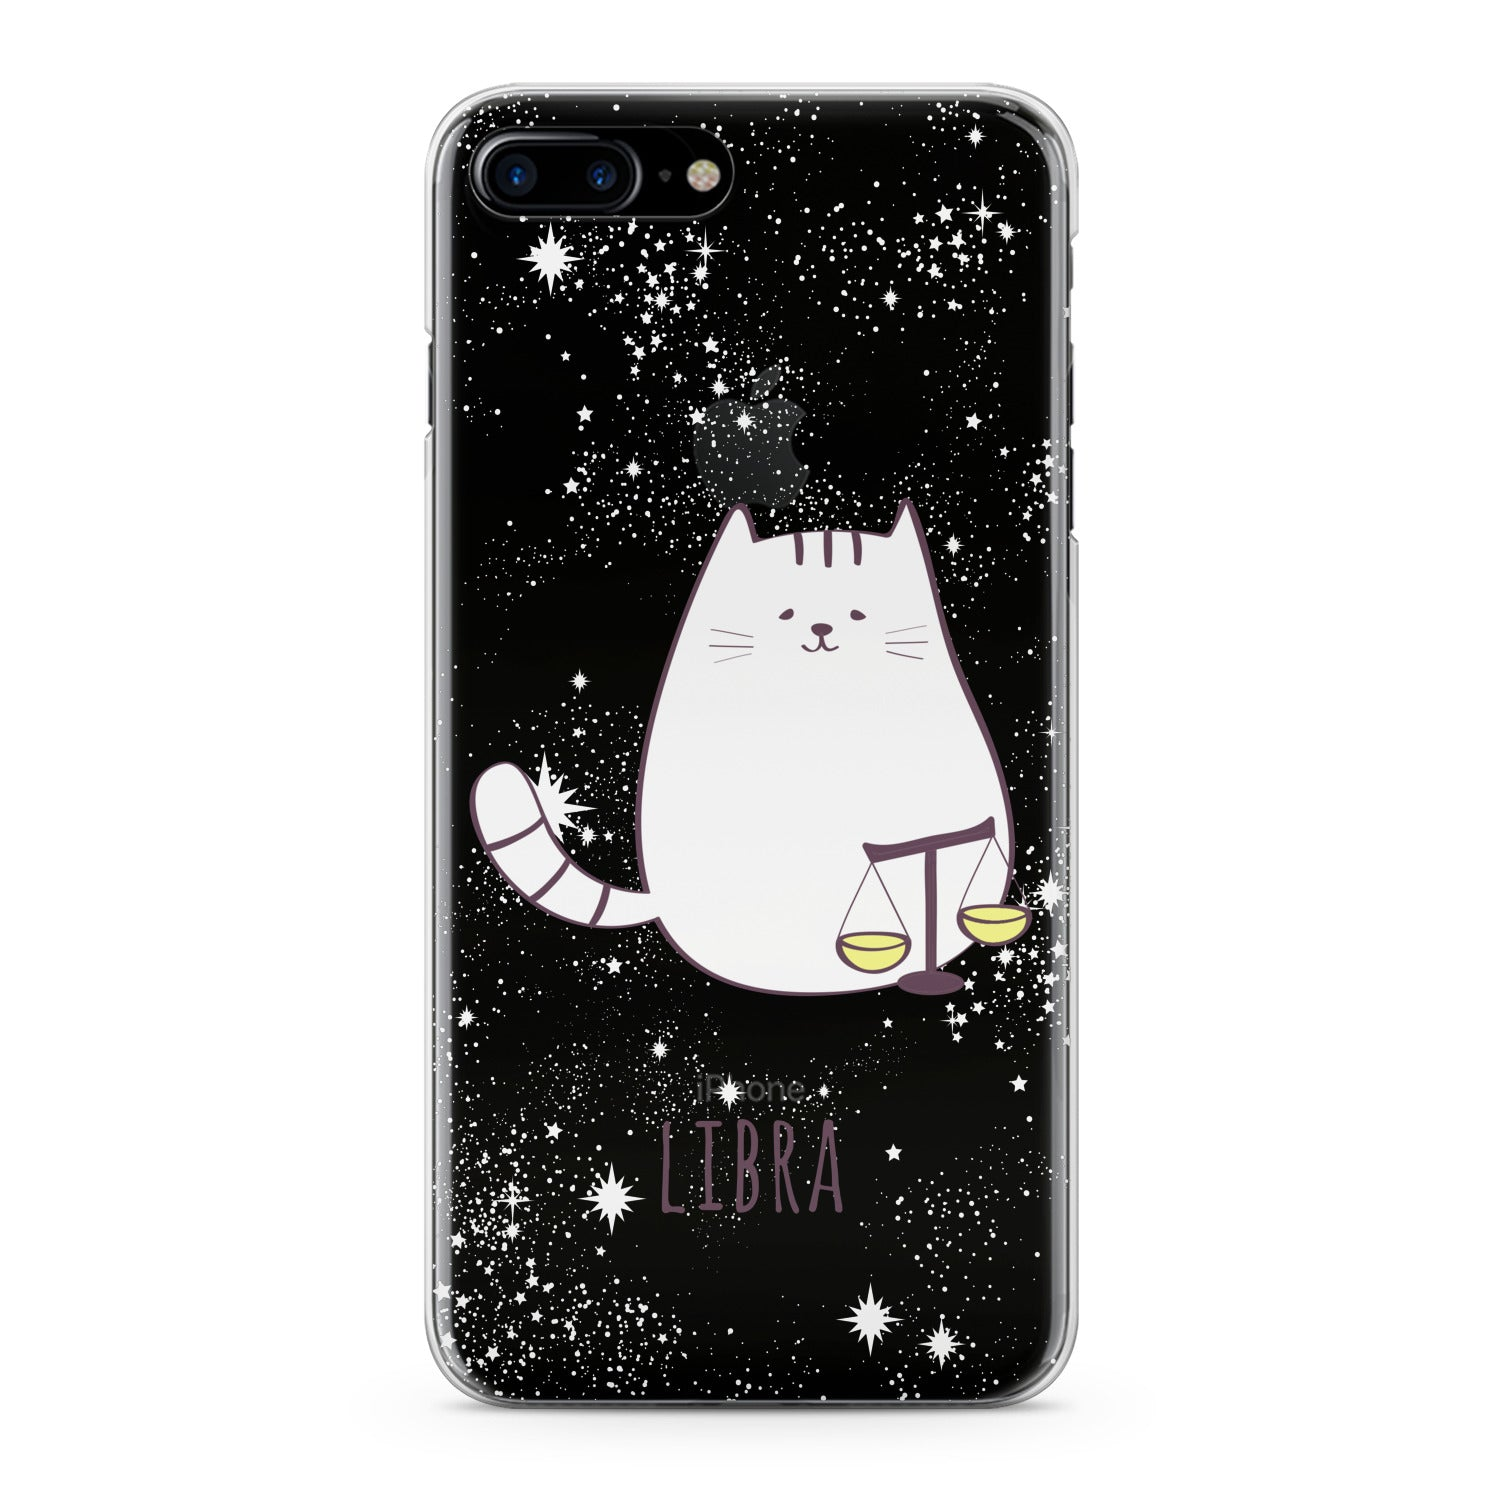 Lex Altern Libra Phone Case for your iPhone & Android phone.